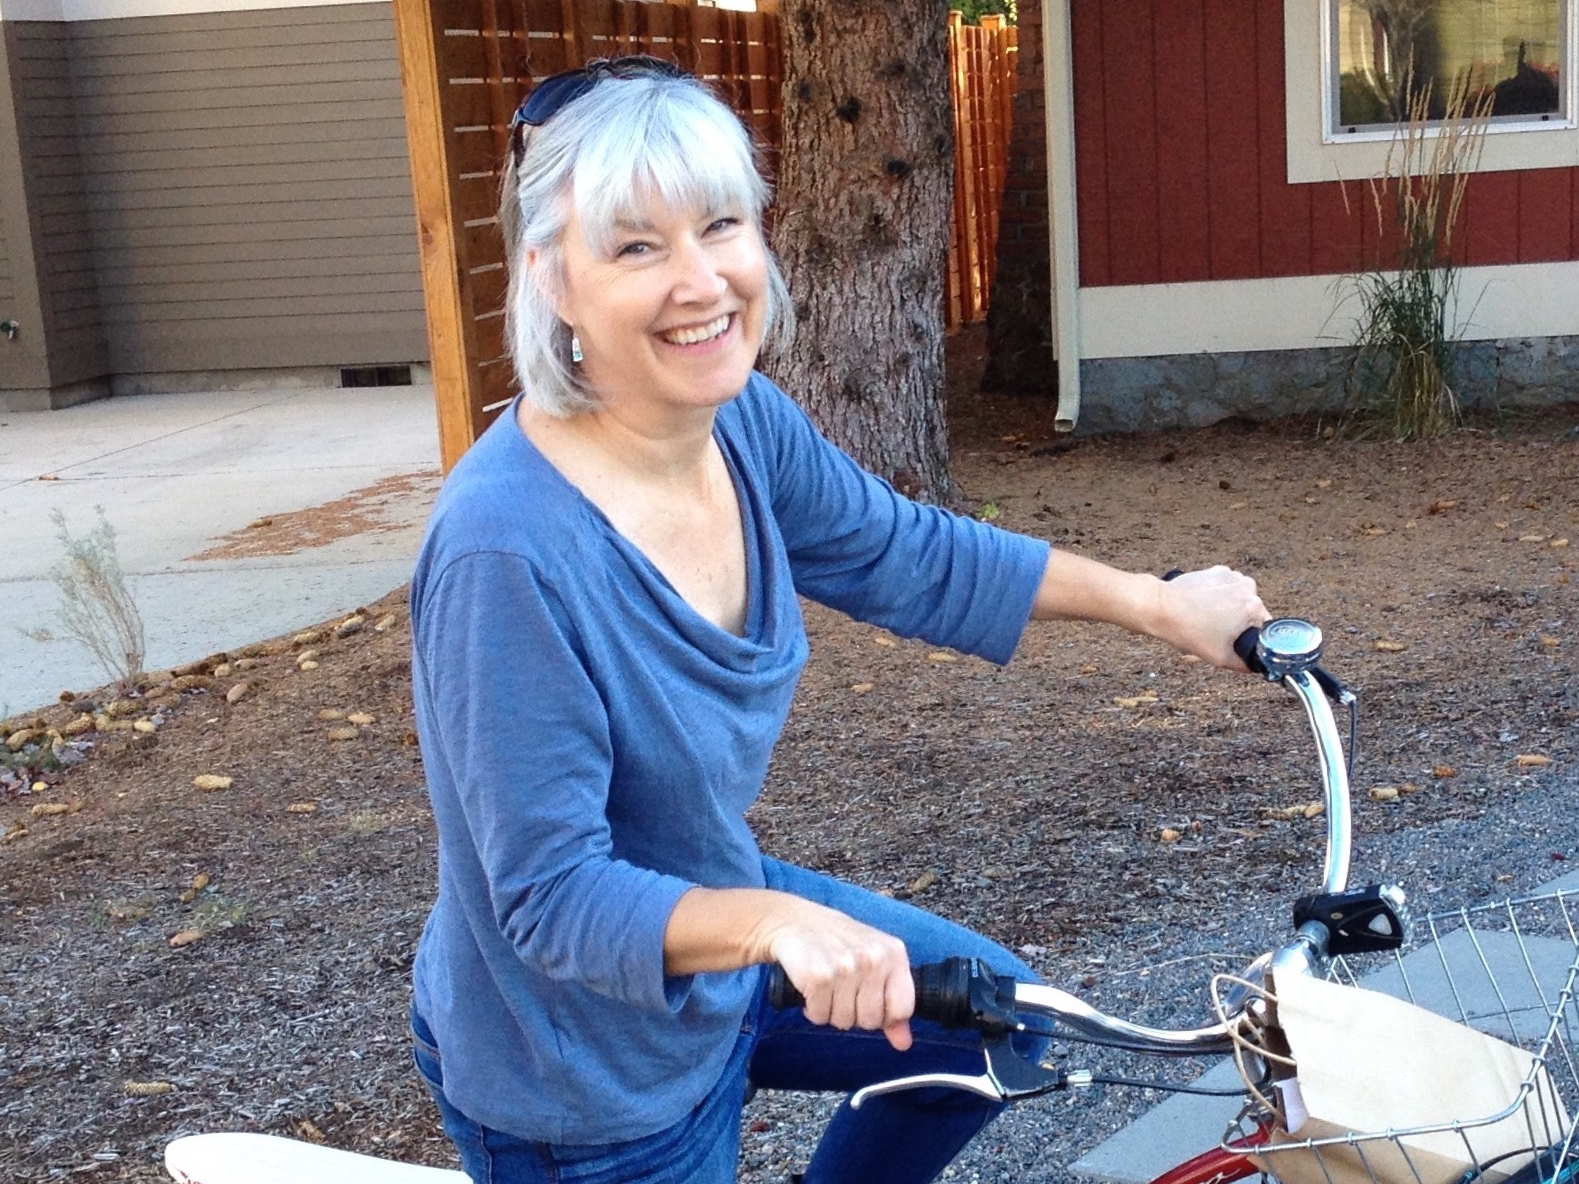 Shelly on one of her many bicycles